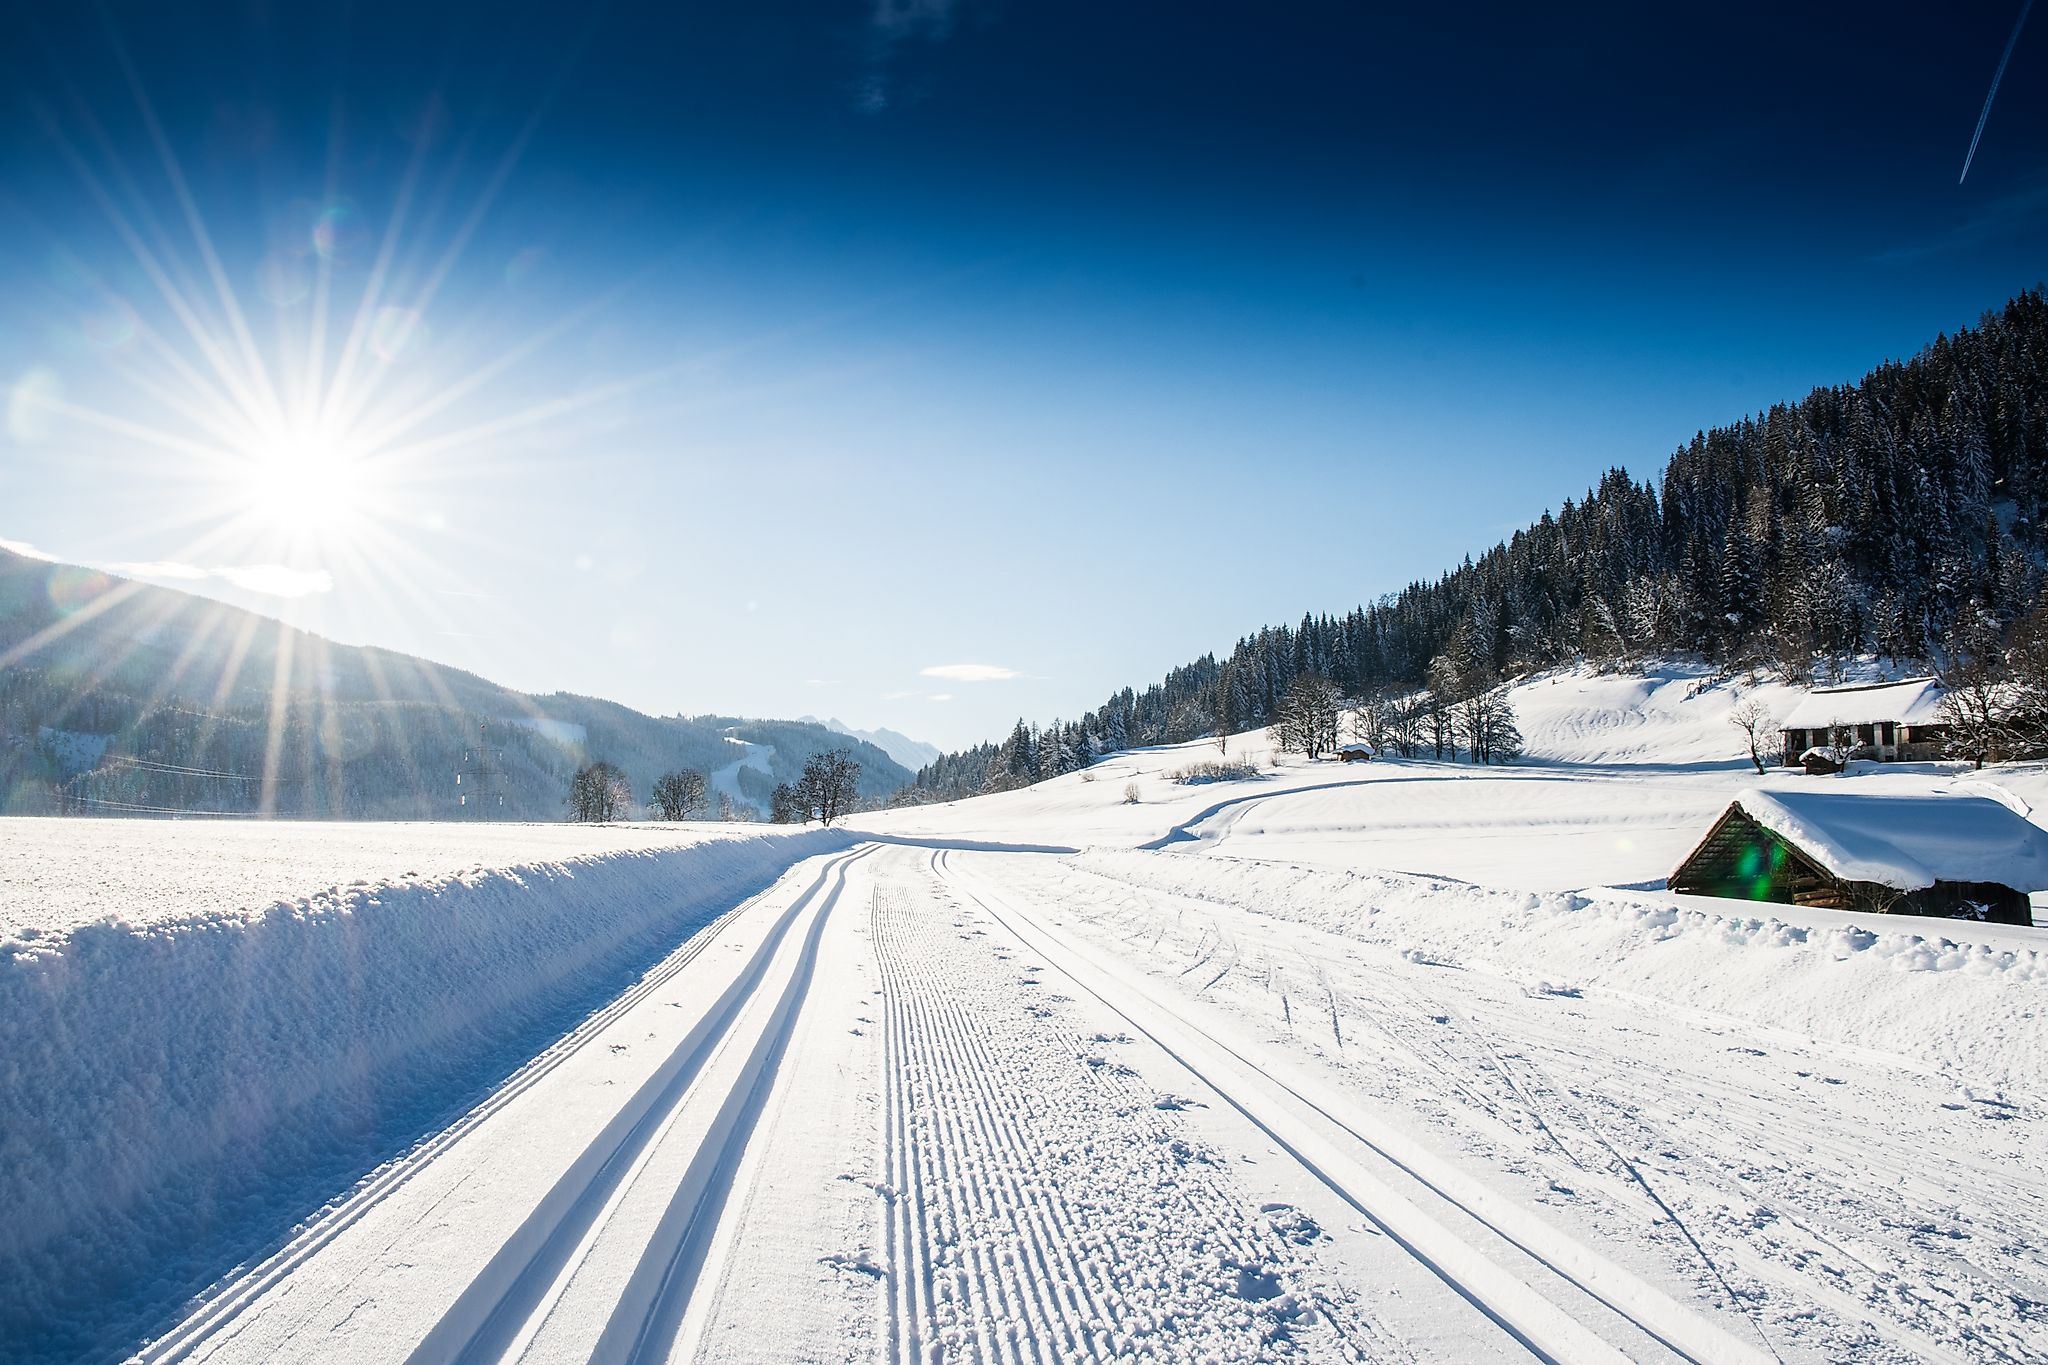 <p>The Schloss Höch cross-country ski track in Reitdorf - cross-country skiing and enjoying the nature around the idyllically situated Schloss Höch.</p>